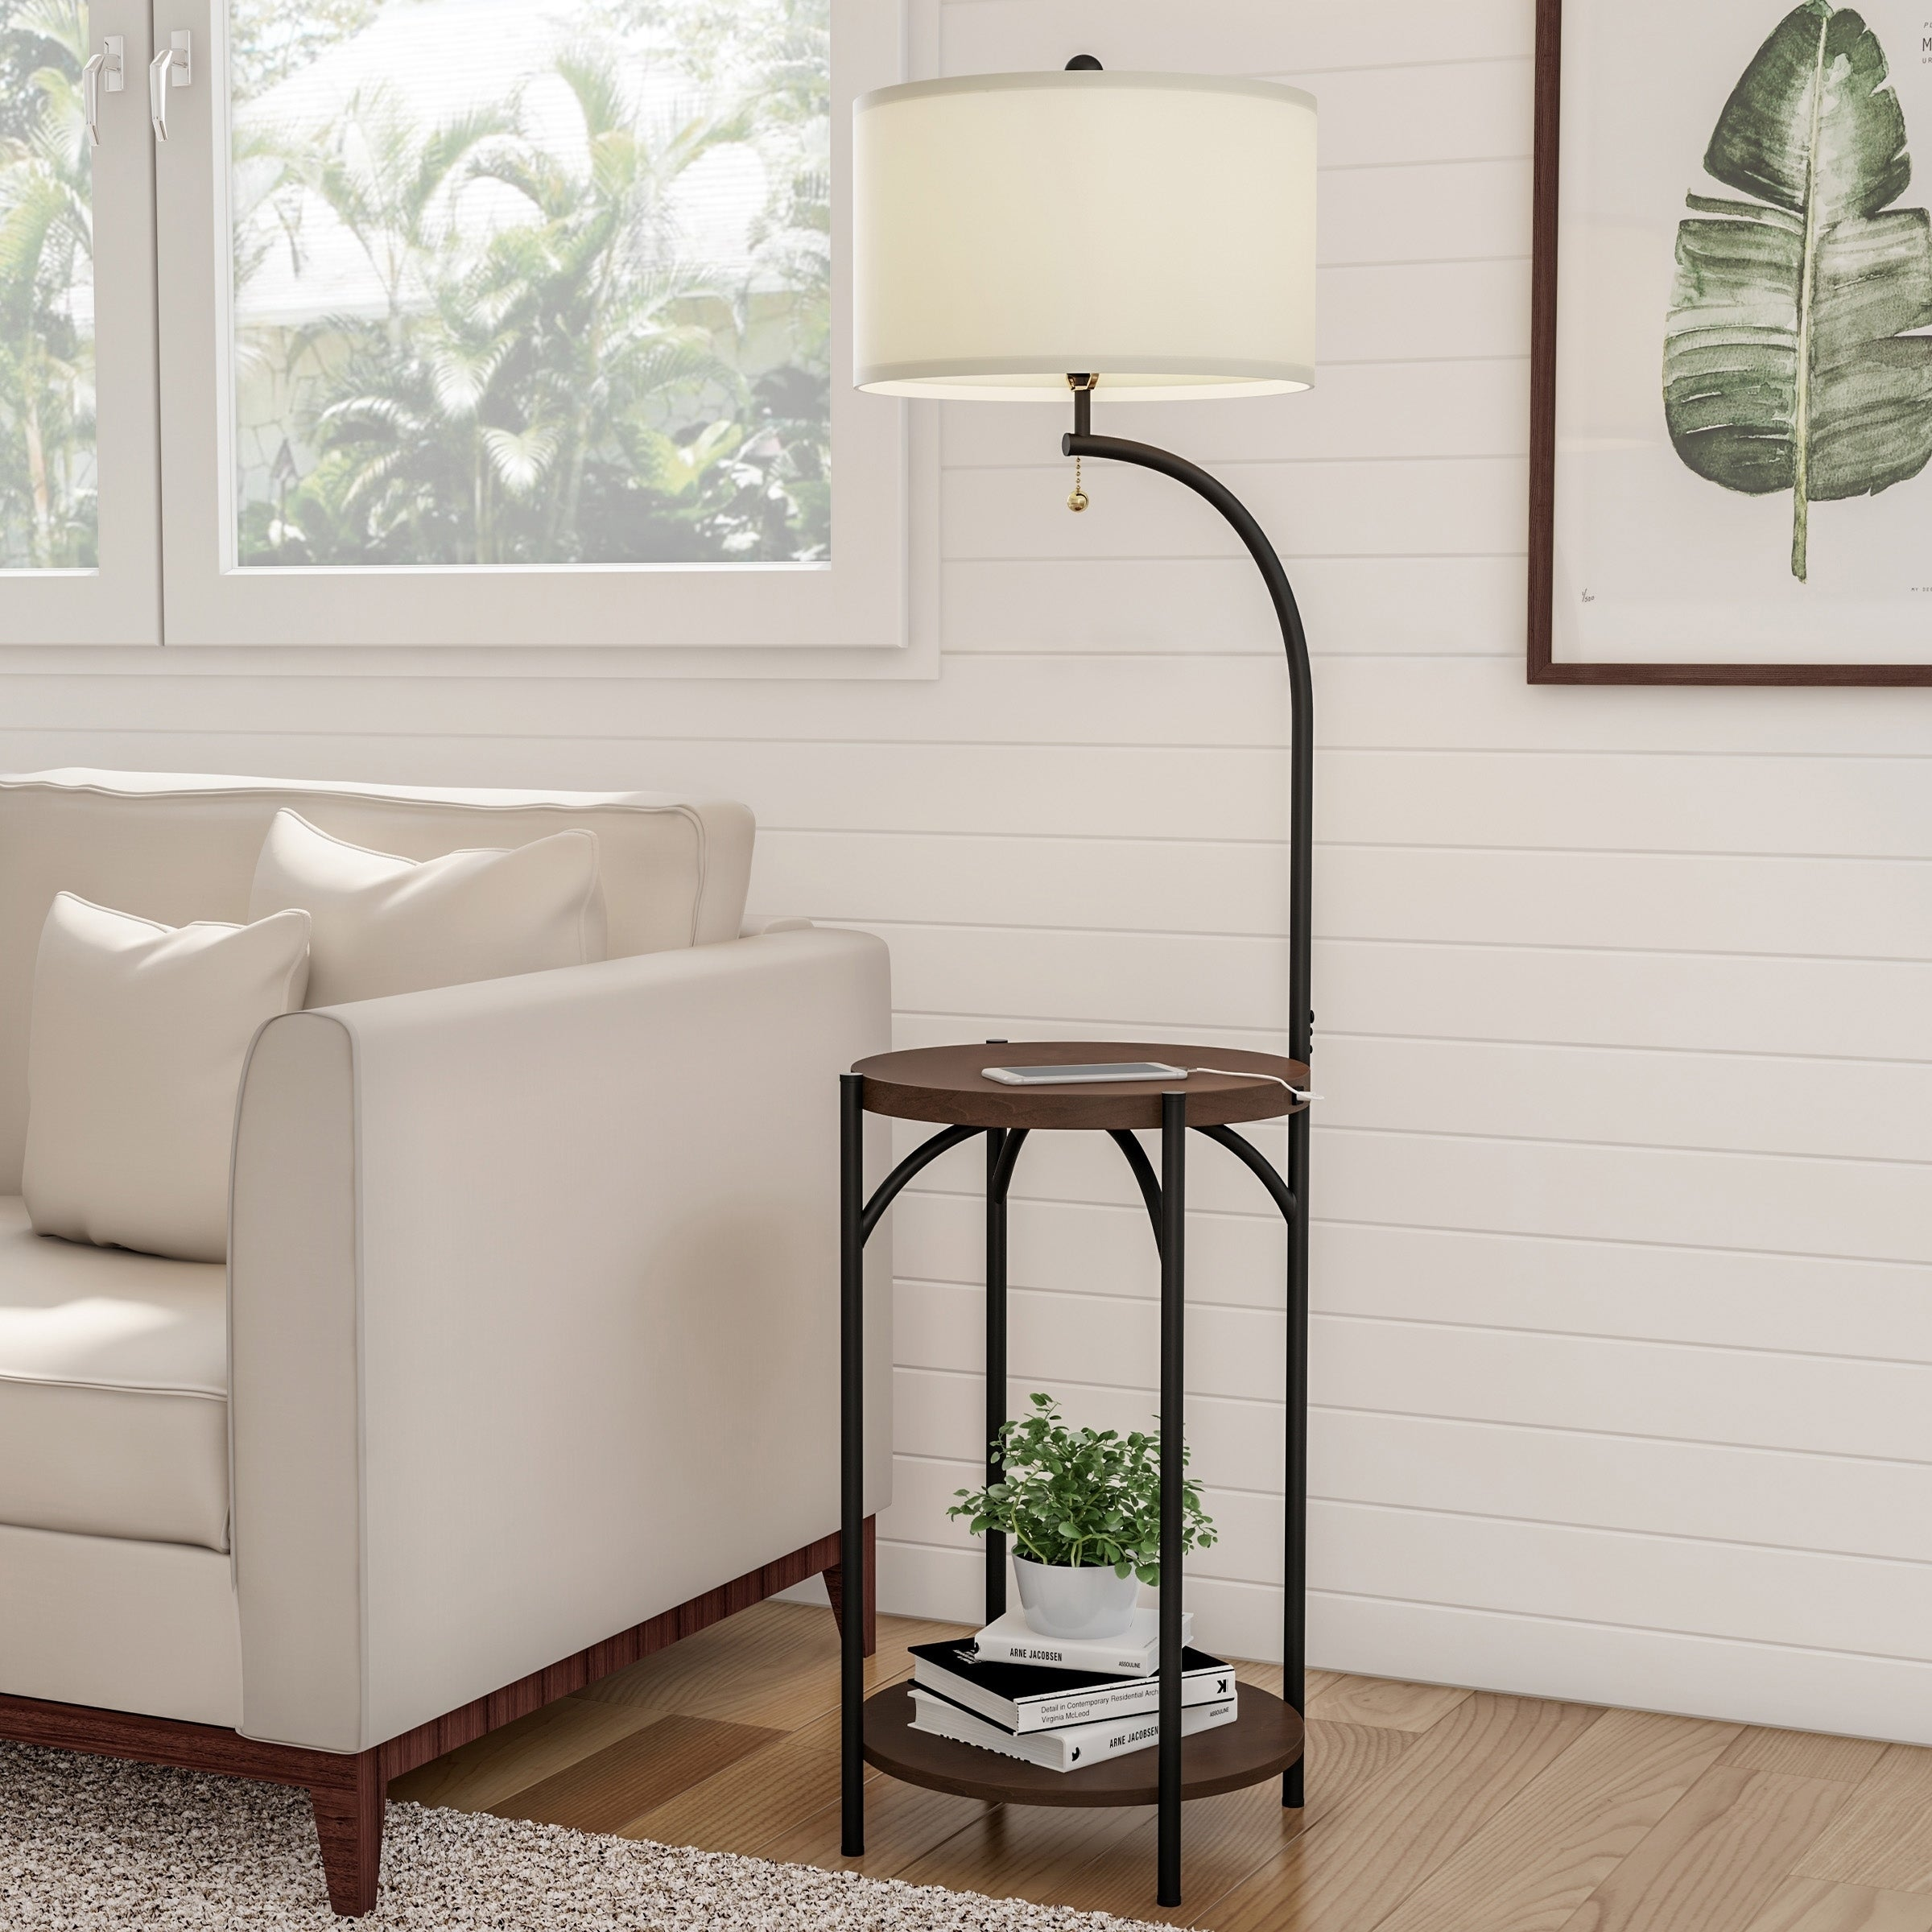 Shop Black Friday Deals On Floor Lamp End Table Modern Rustic Side Table With Drum Shaped Shade By Lavish Home Overstock 28503455